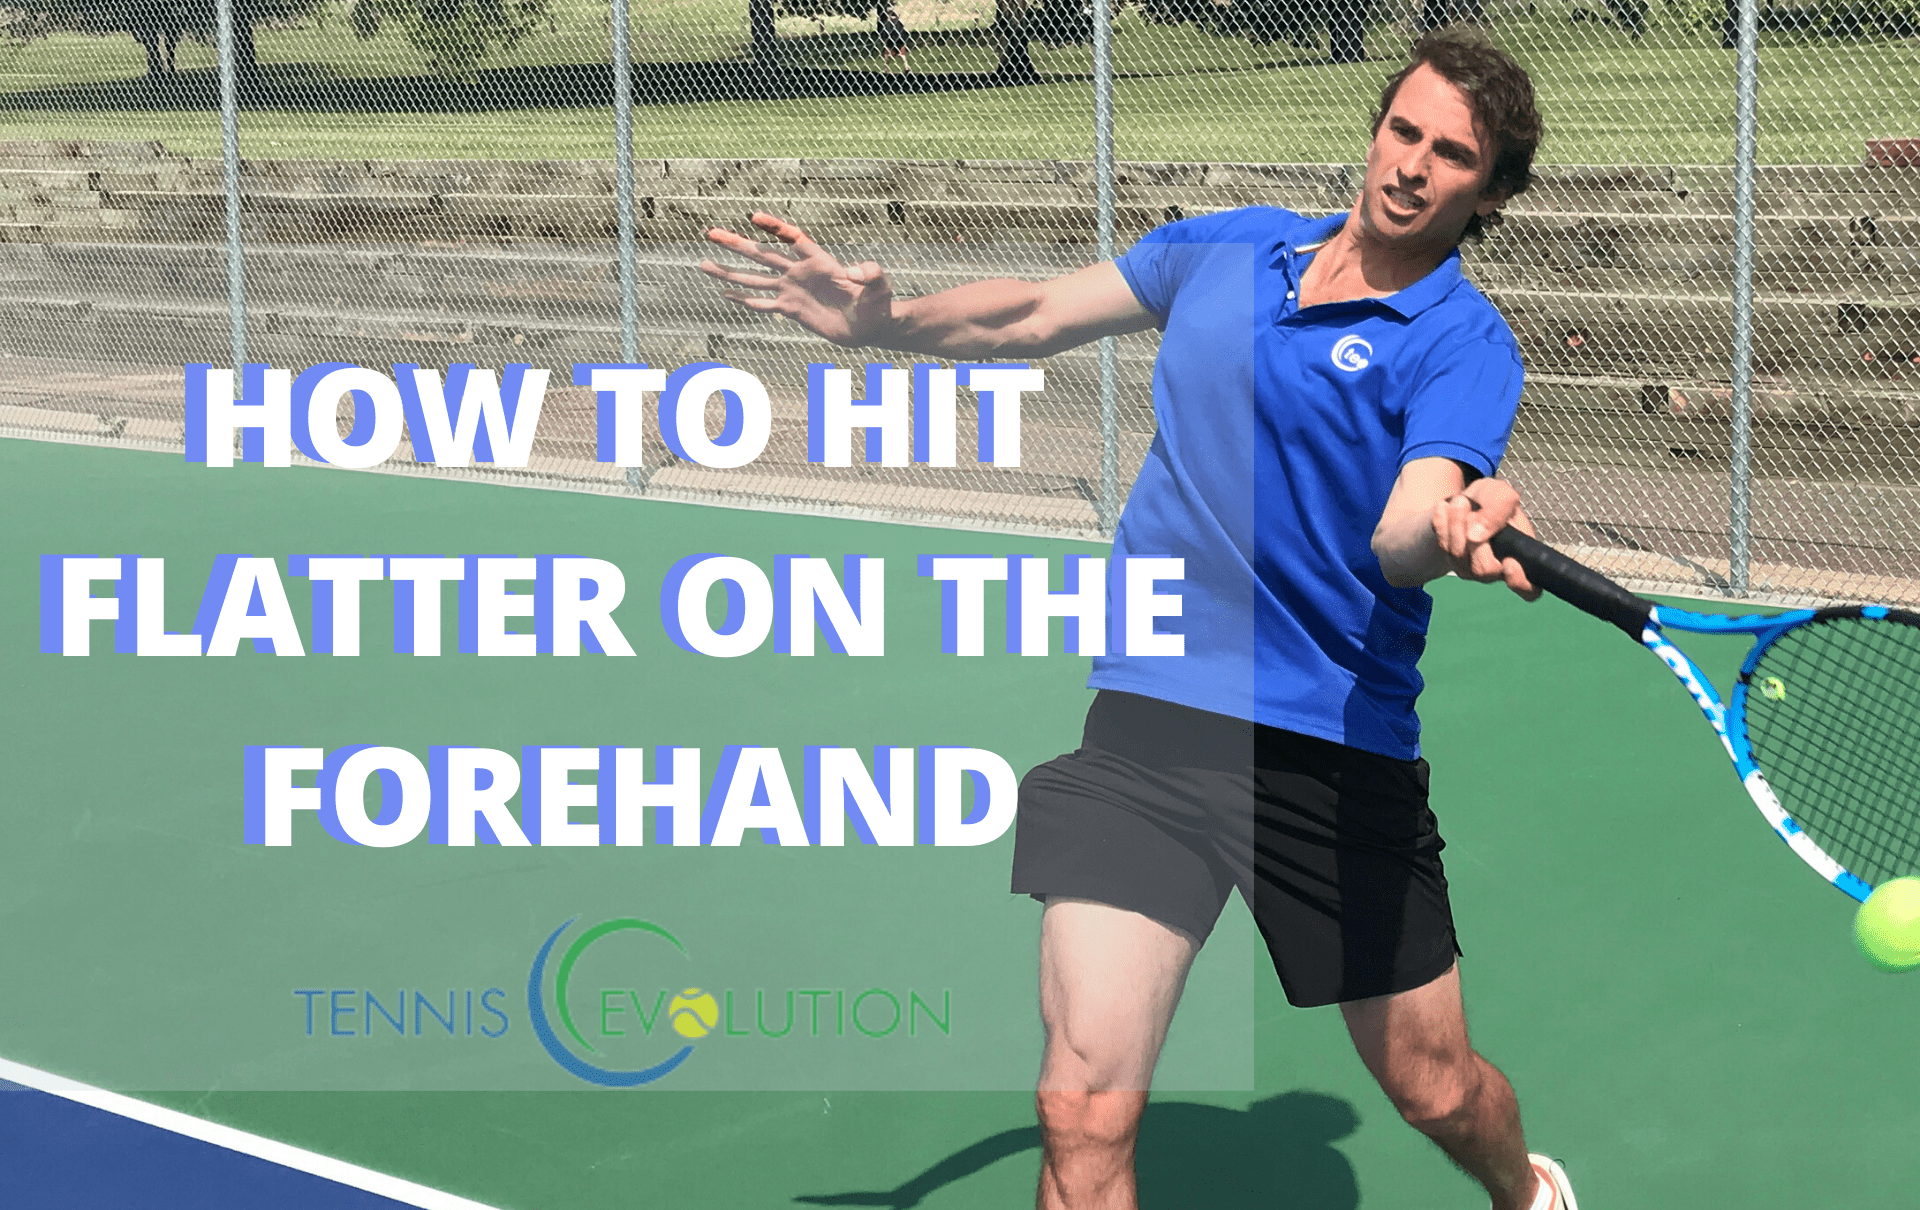 Tennis Flat Forehand Technique